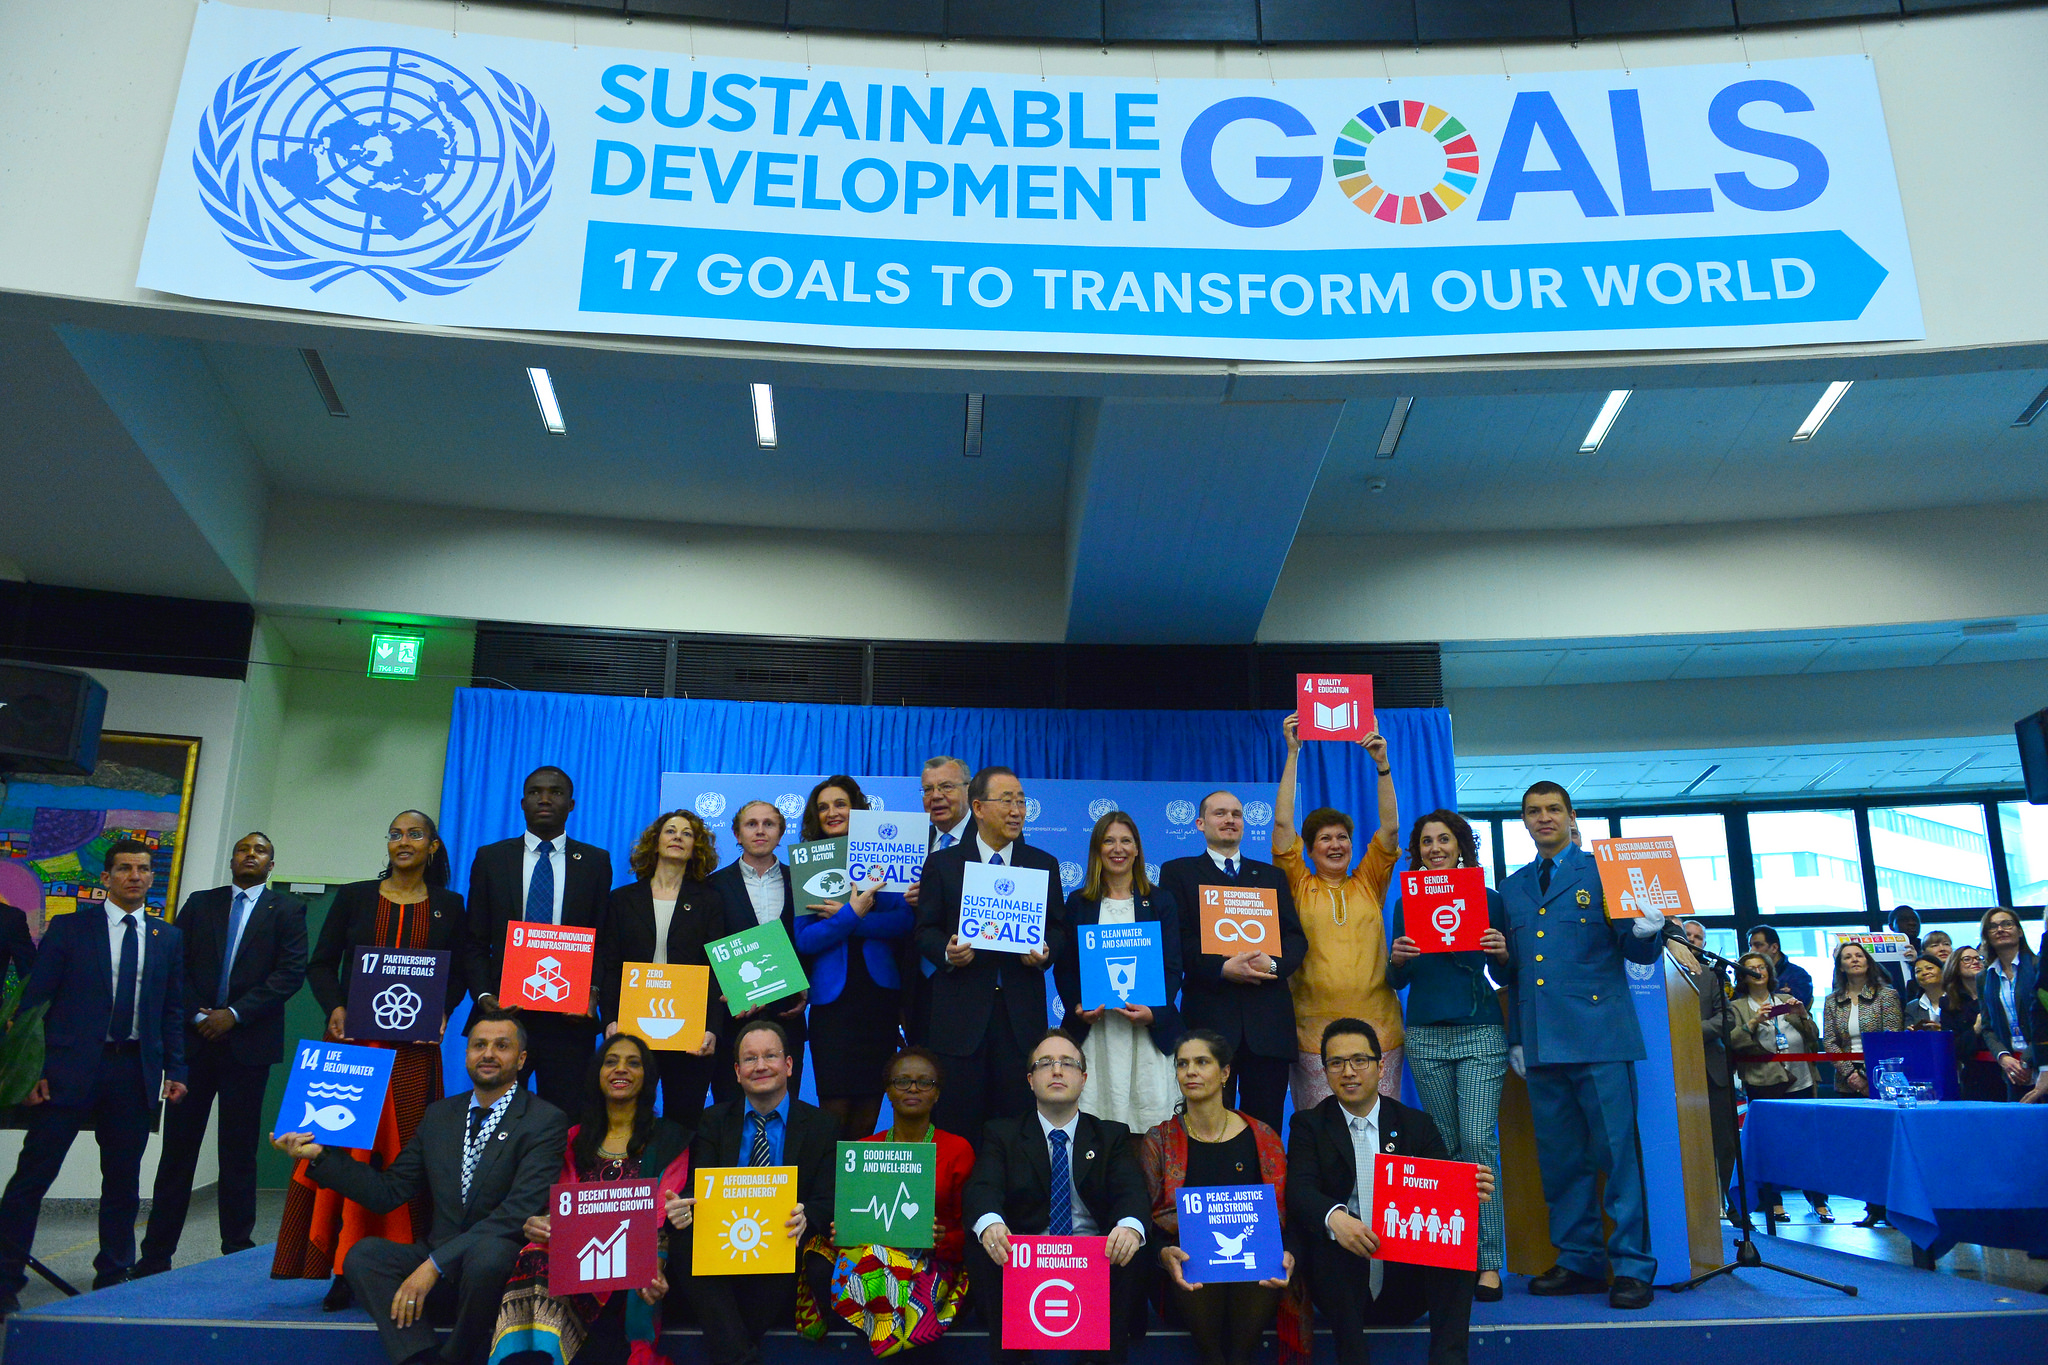 United Nations Secretary-General Ban Ki-moon and seventeen staff each hold a card for one of the Sustainable Development Goals